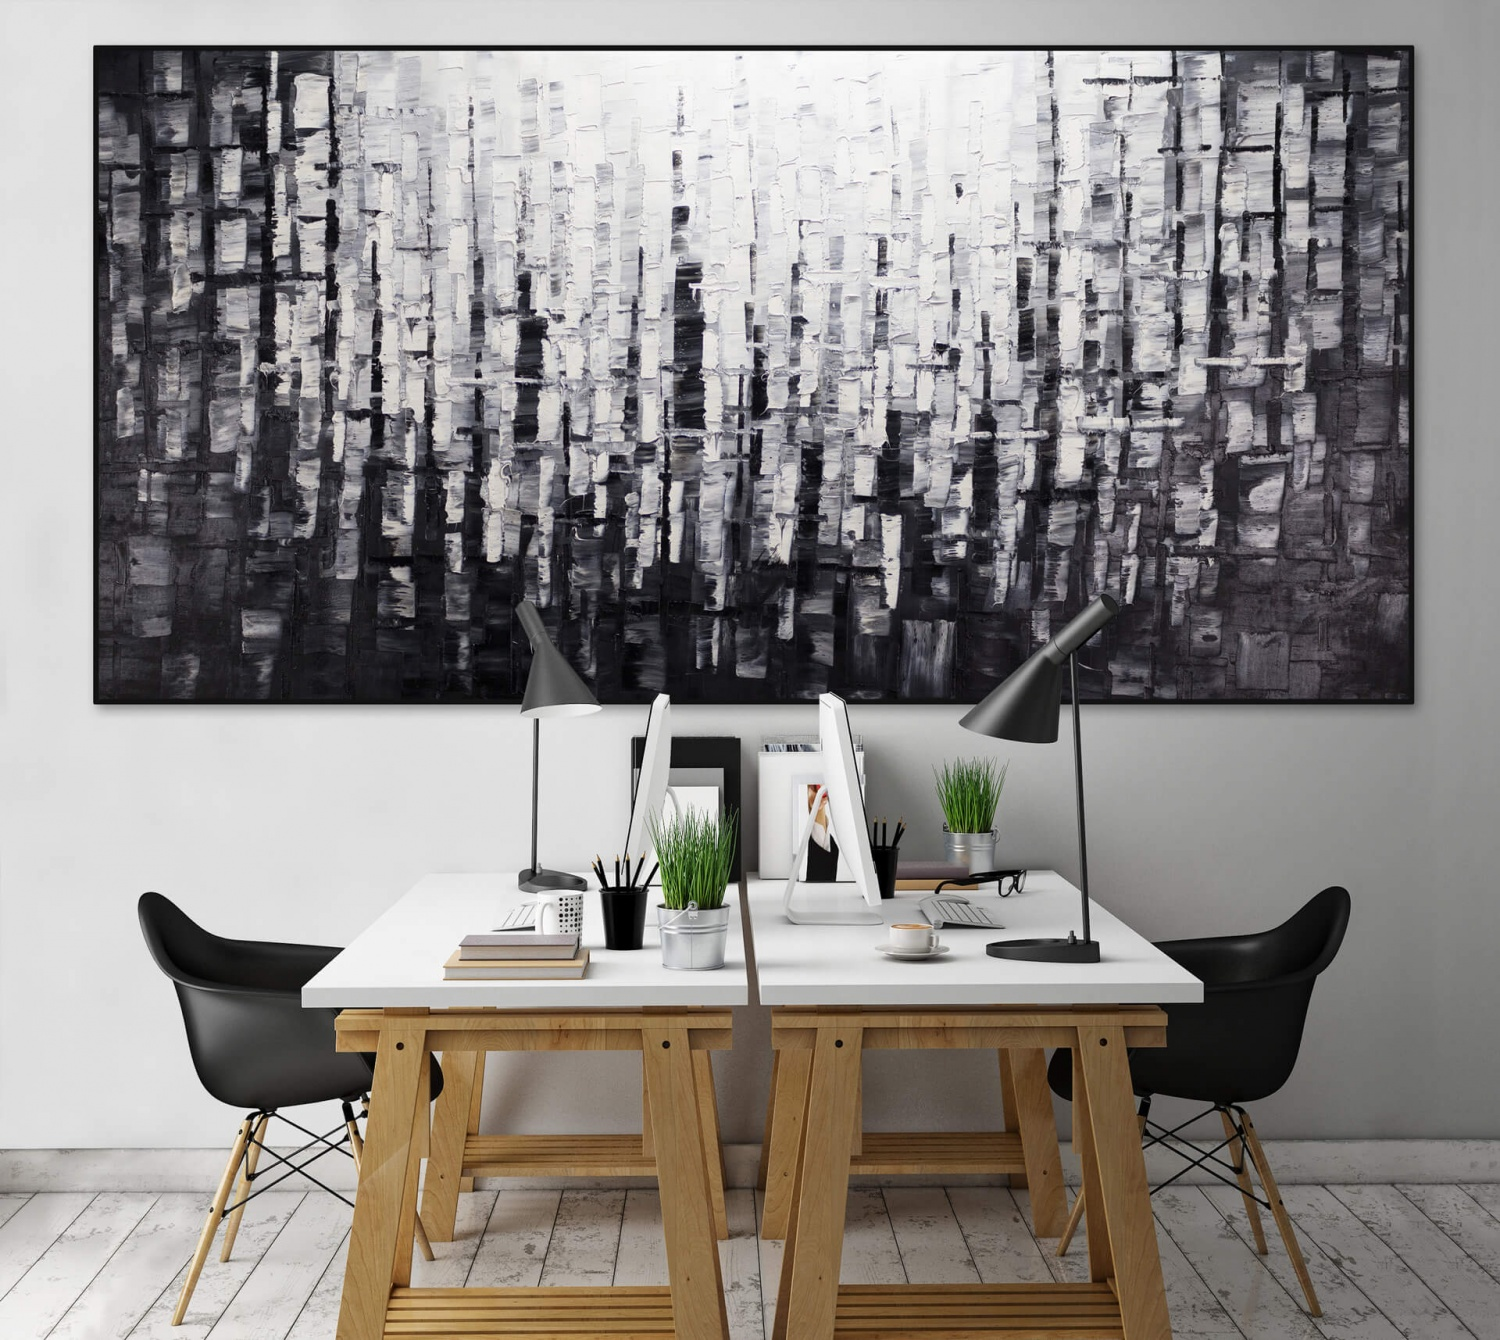 l gem lde 39 abstrakt licht schwarz weiss xxl 39 handgemalt leinwand bilder 2 4251155704503. Black Bedroom Furniture Sets. Home Design Ideas